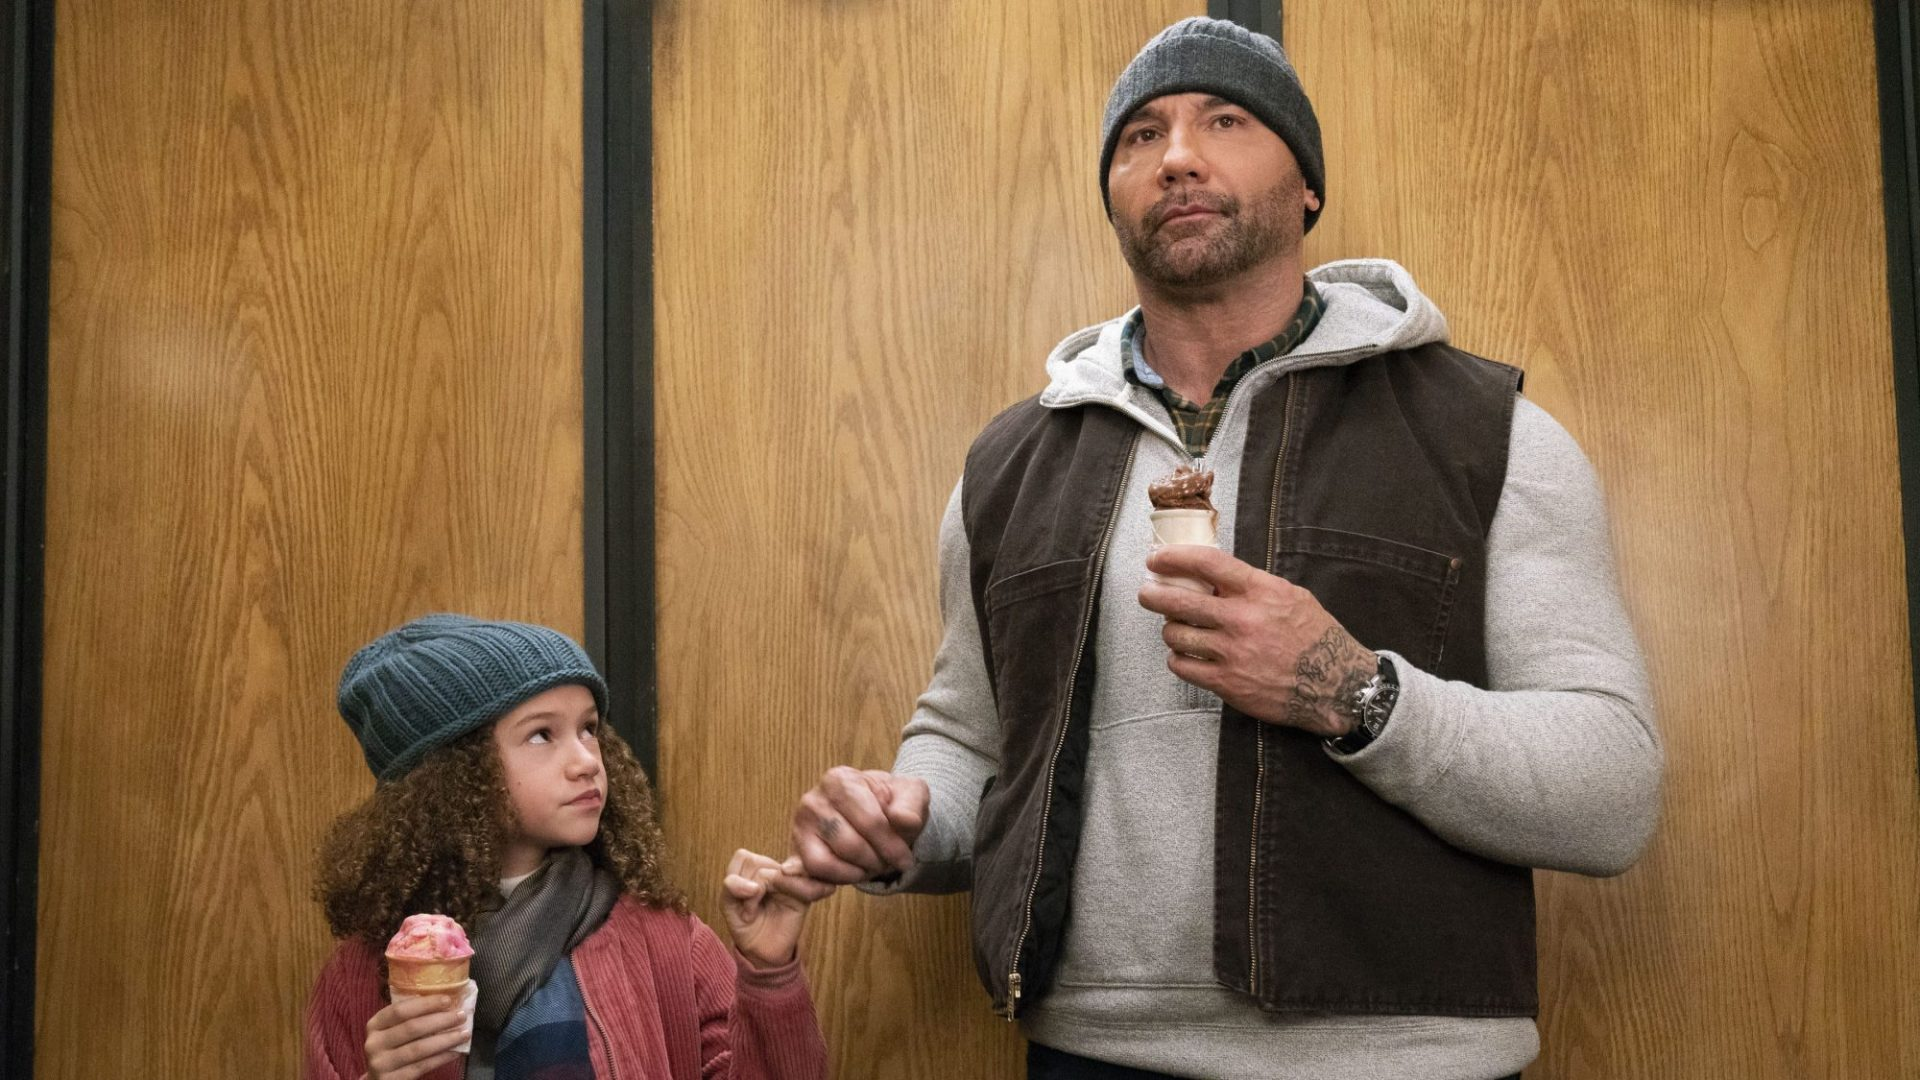 My Spy - Sophie (Chloe Coleman) and JJ (Dave Bautista) in an elevator with ice cream